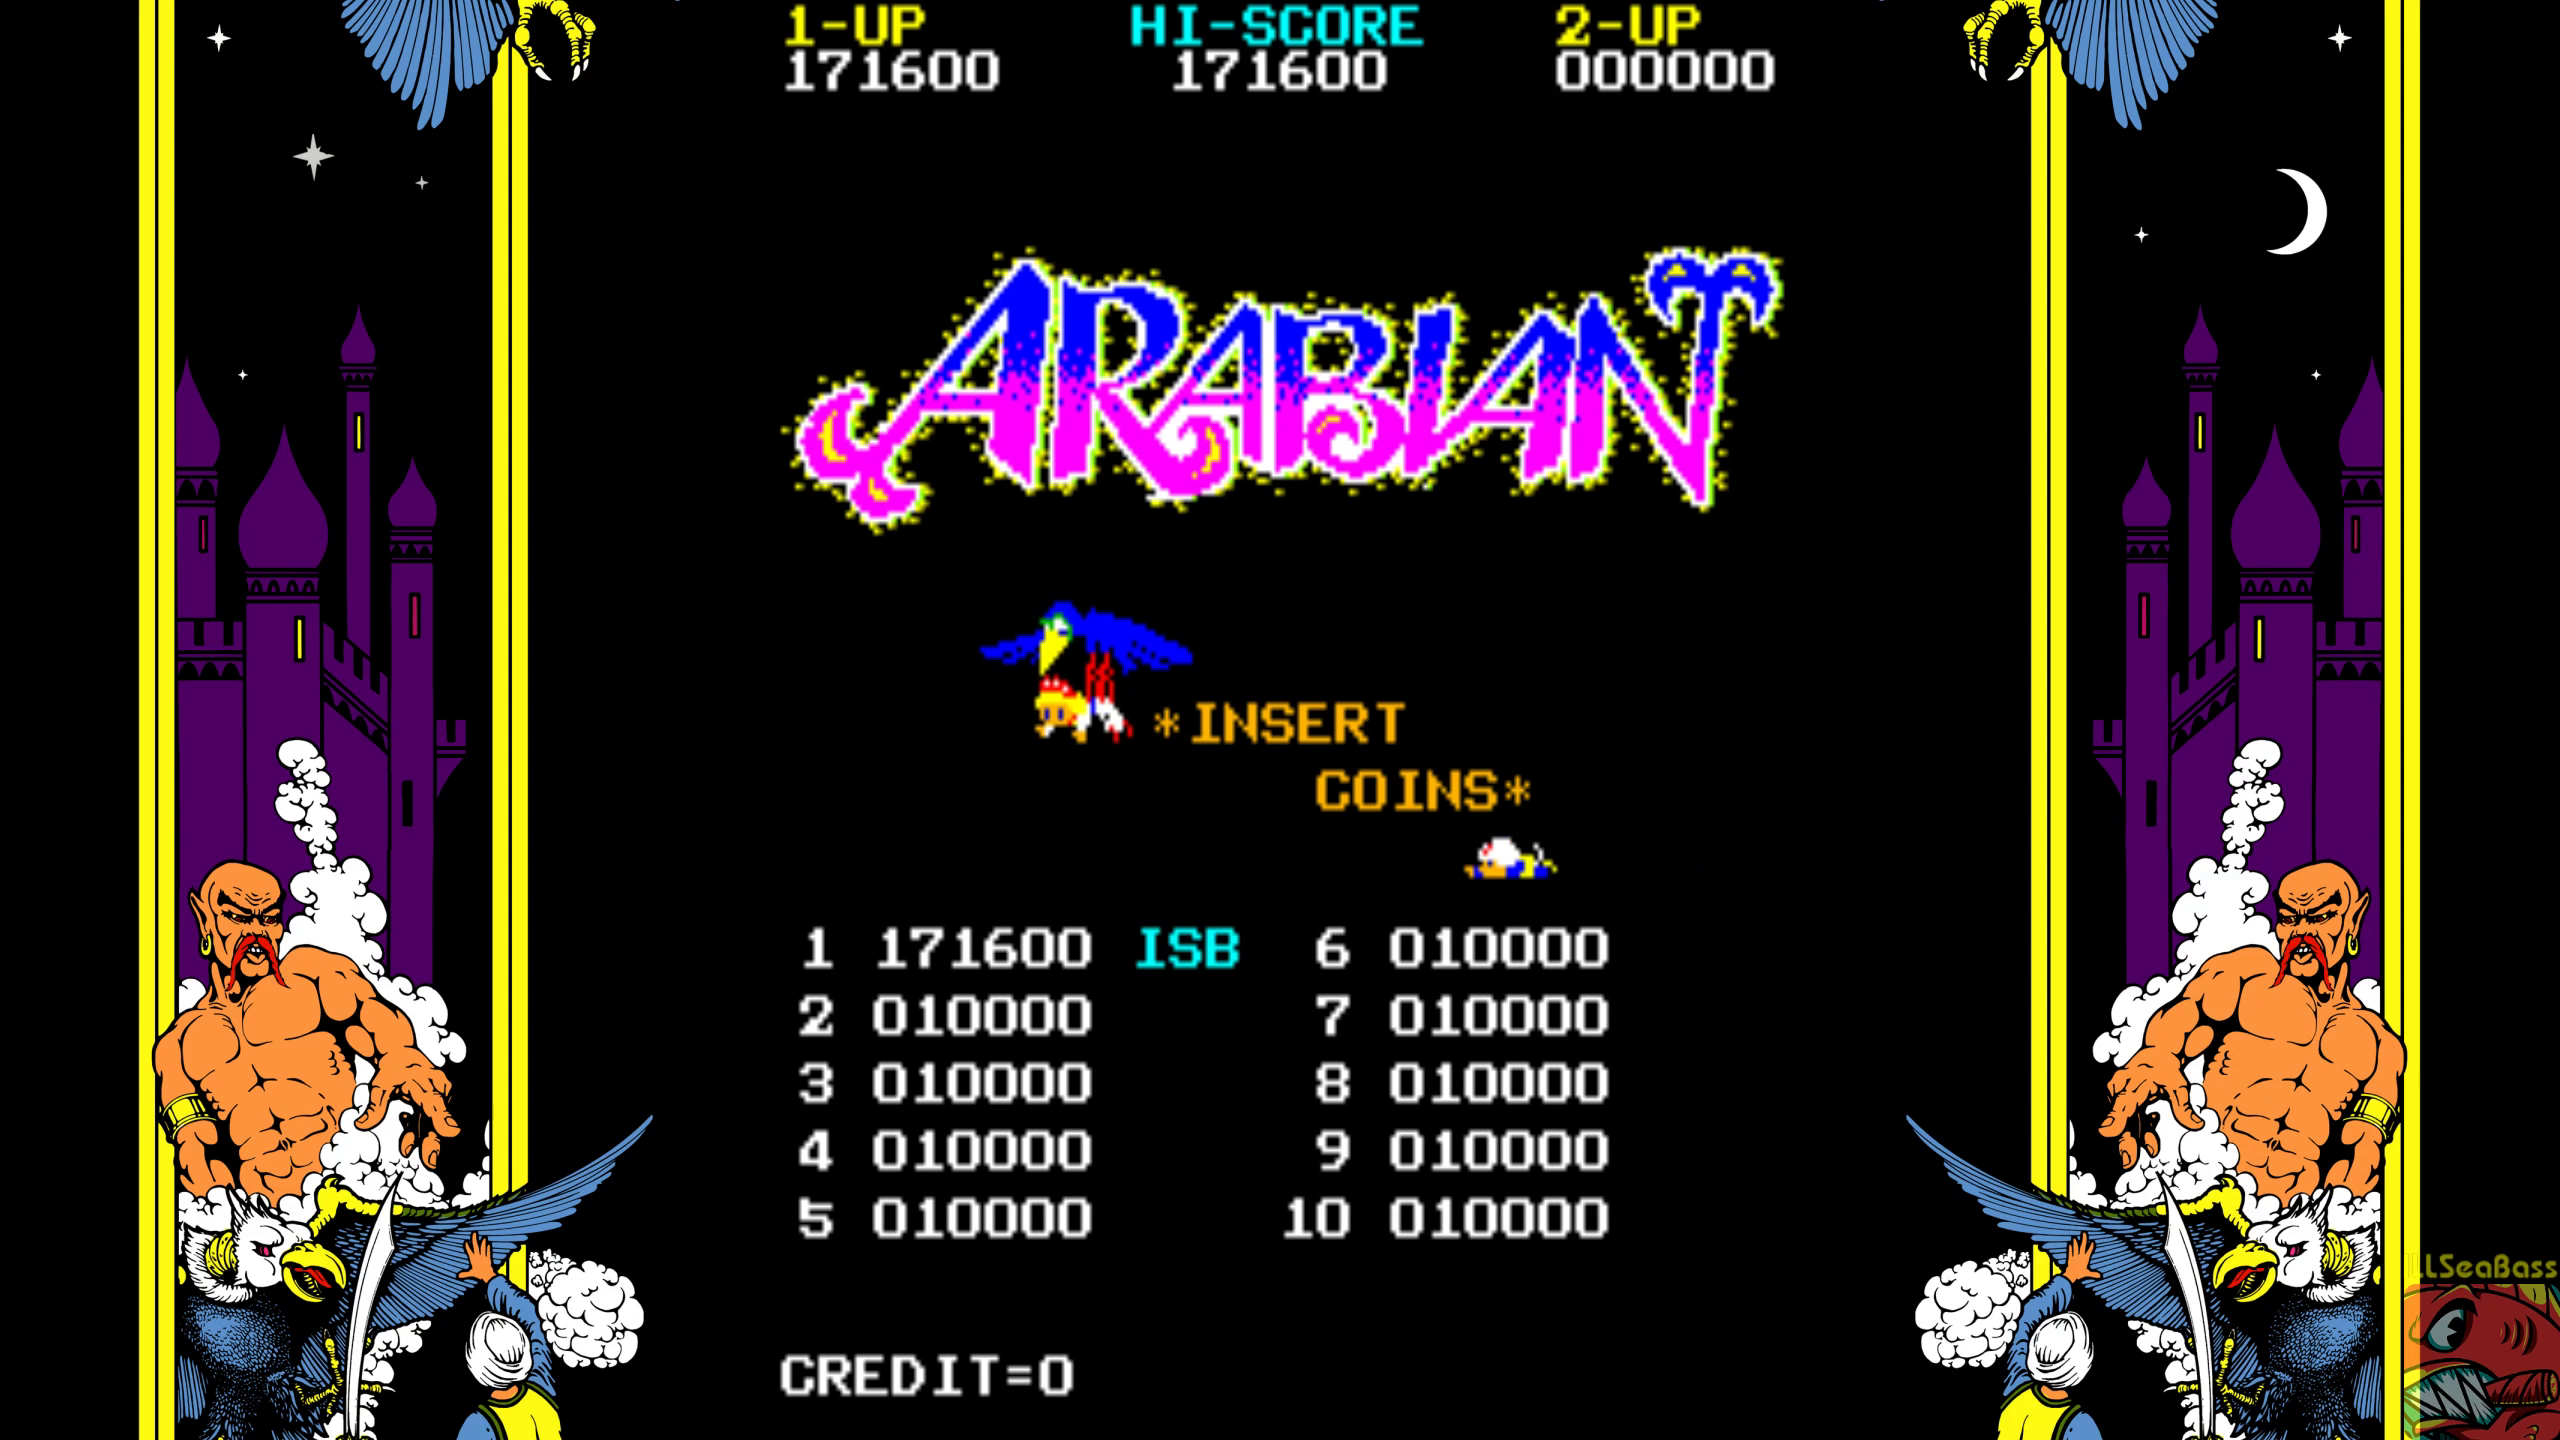 Arabian 171,600 points